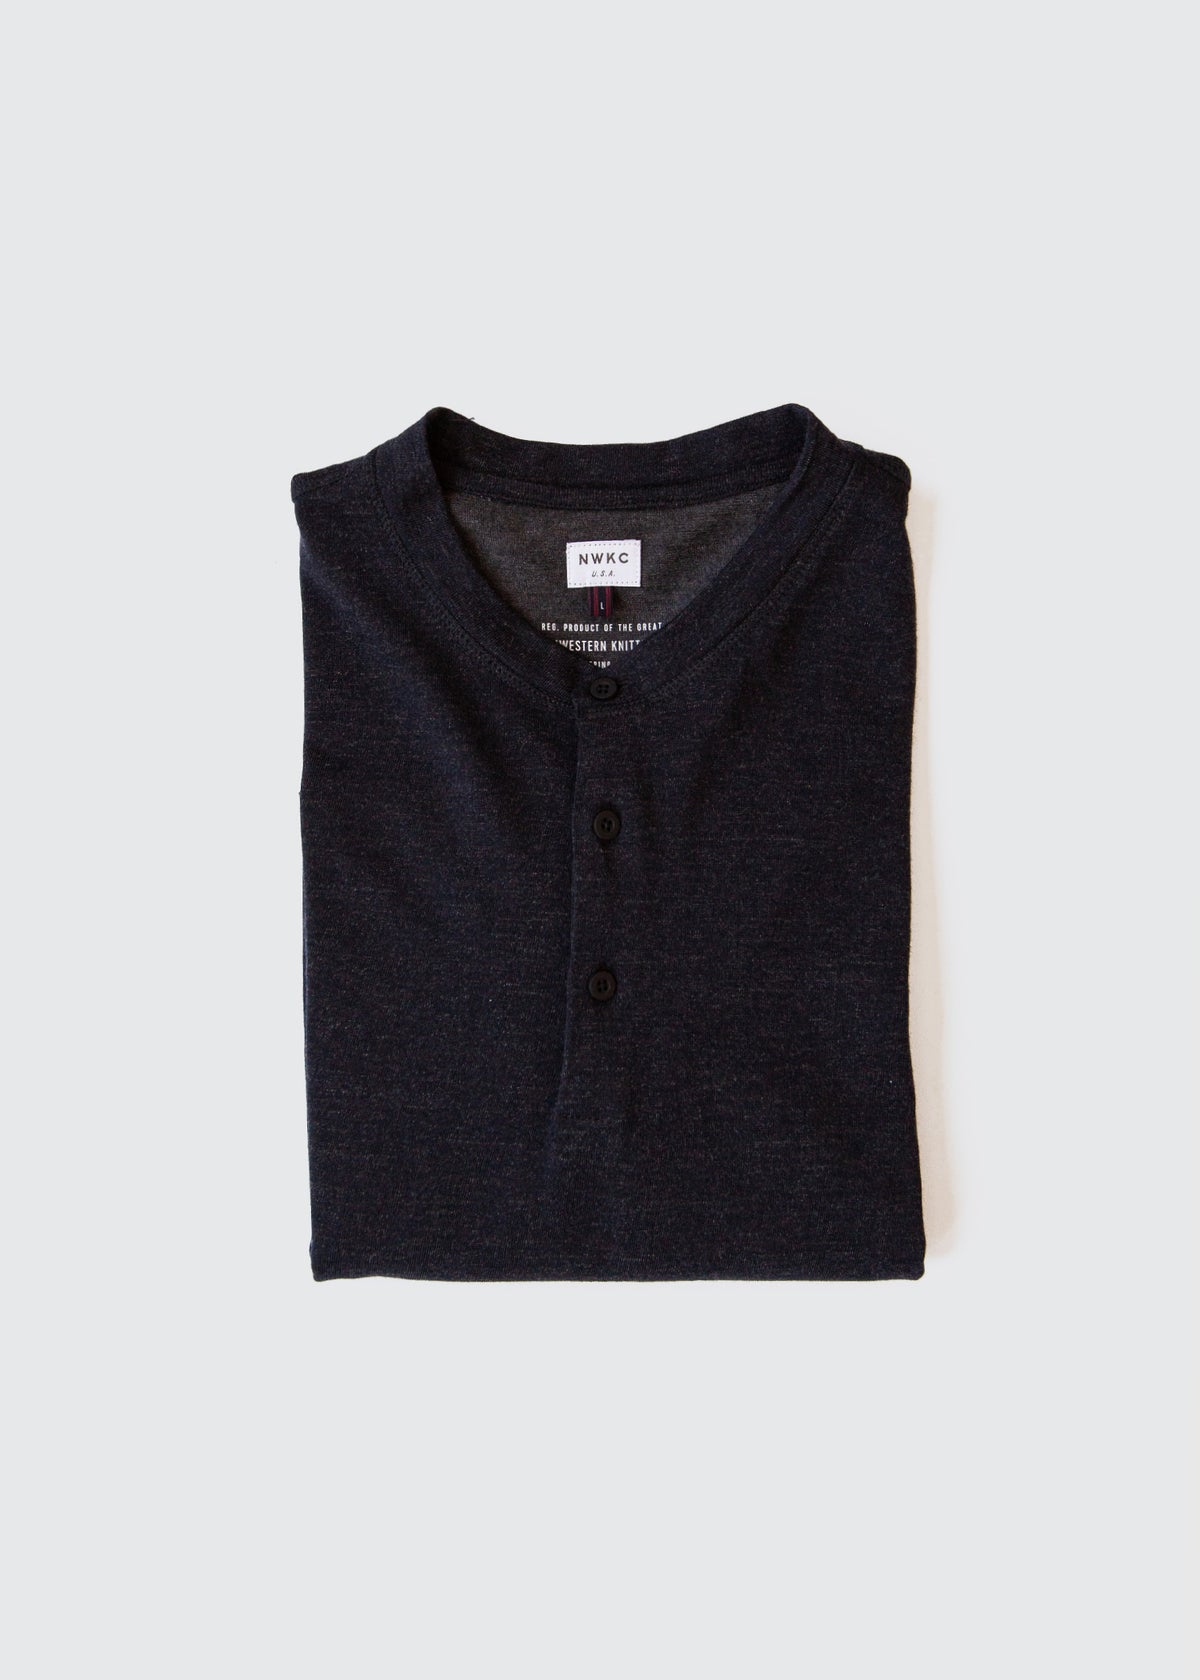 105 - LS HENLEY - NAVY - Wilson & Willy's - MPLS Neighbor Goods